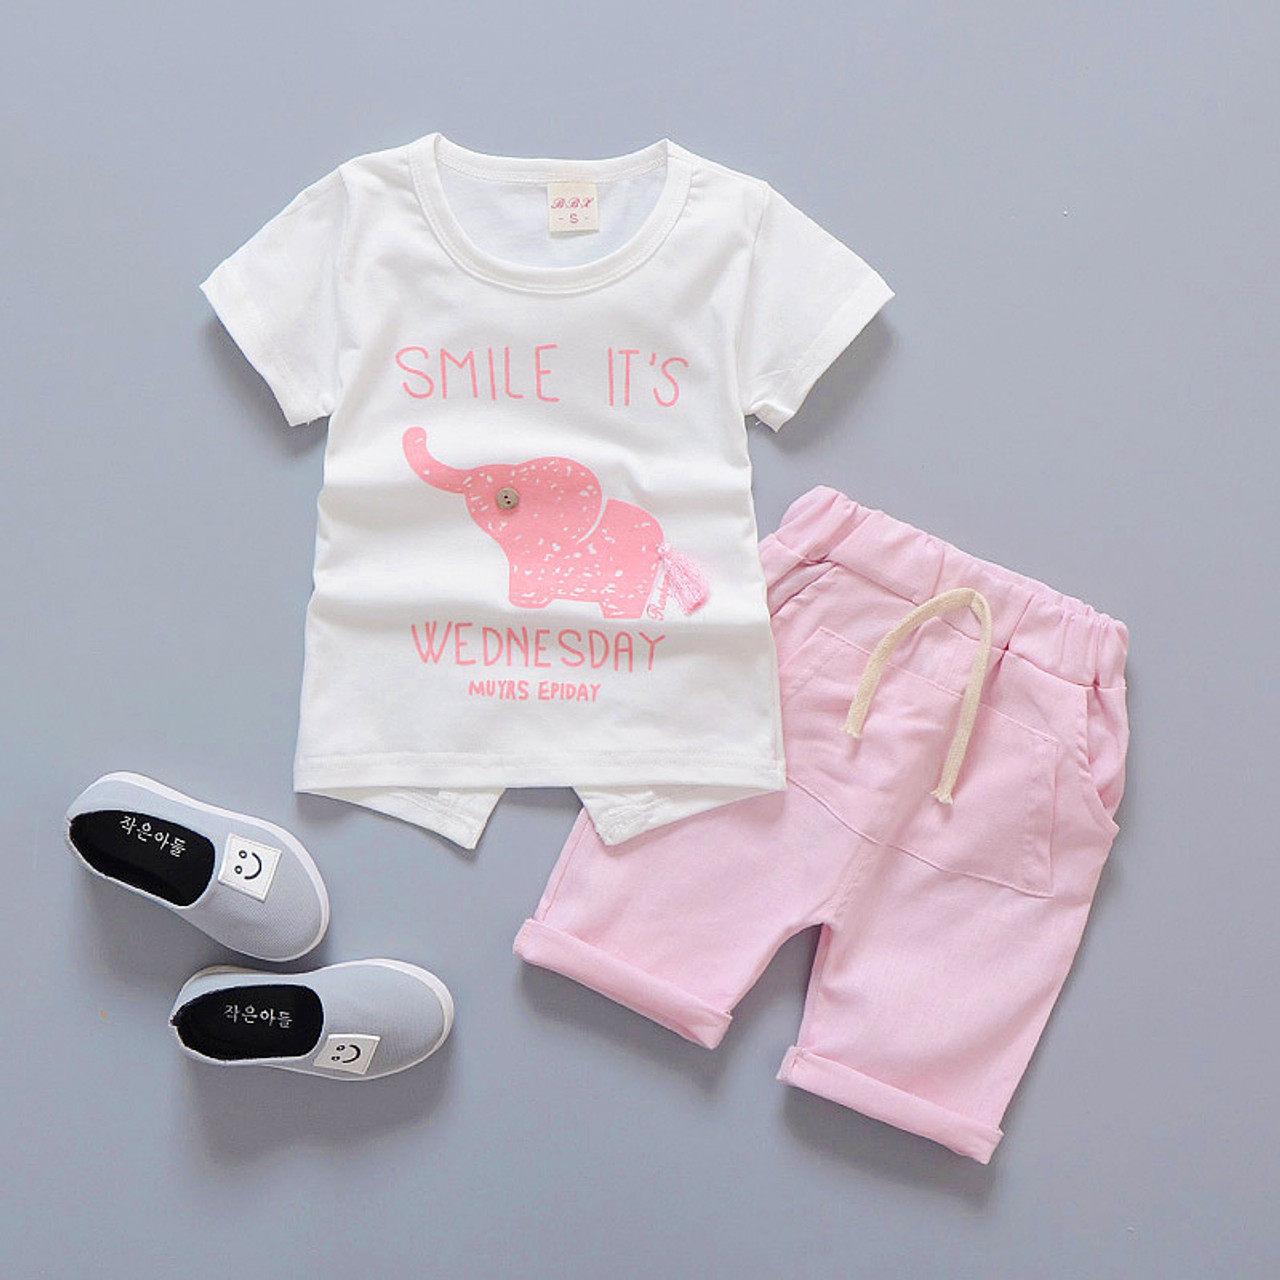 c83df7930c01 ... Baby Boy Clothes 2017 Summer Brand Infant Clothing Elephant Short  Sleeved T-shirts Tops Striped ...